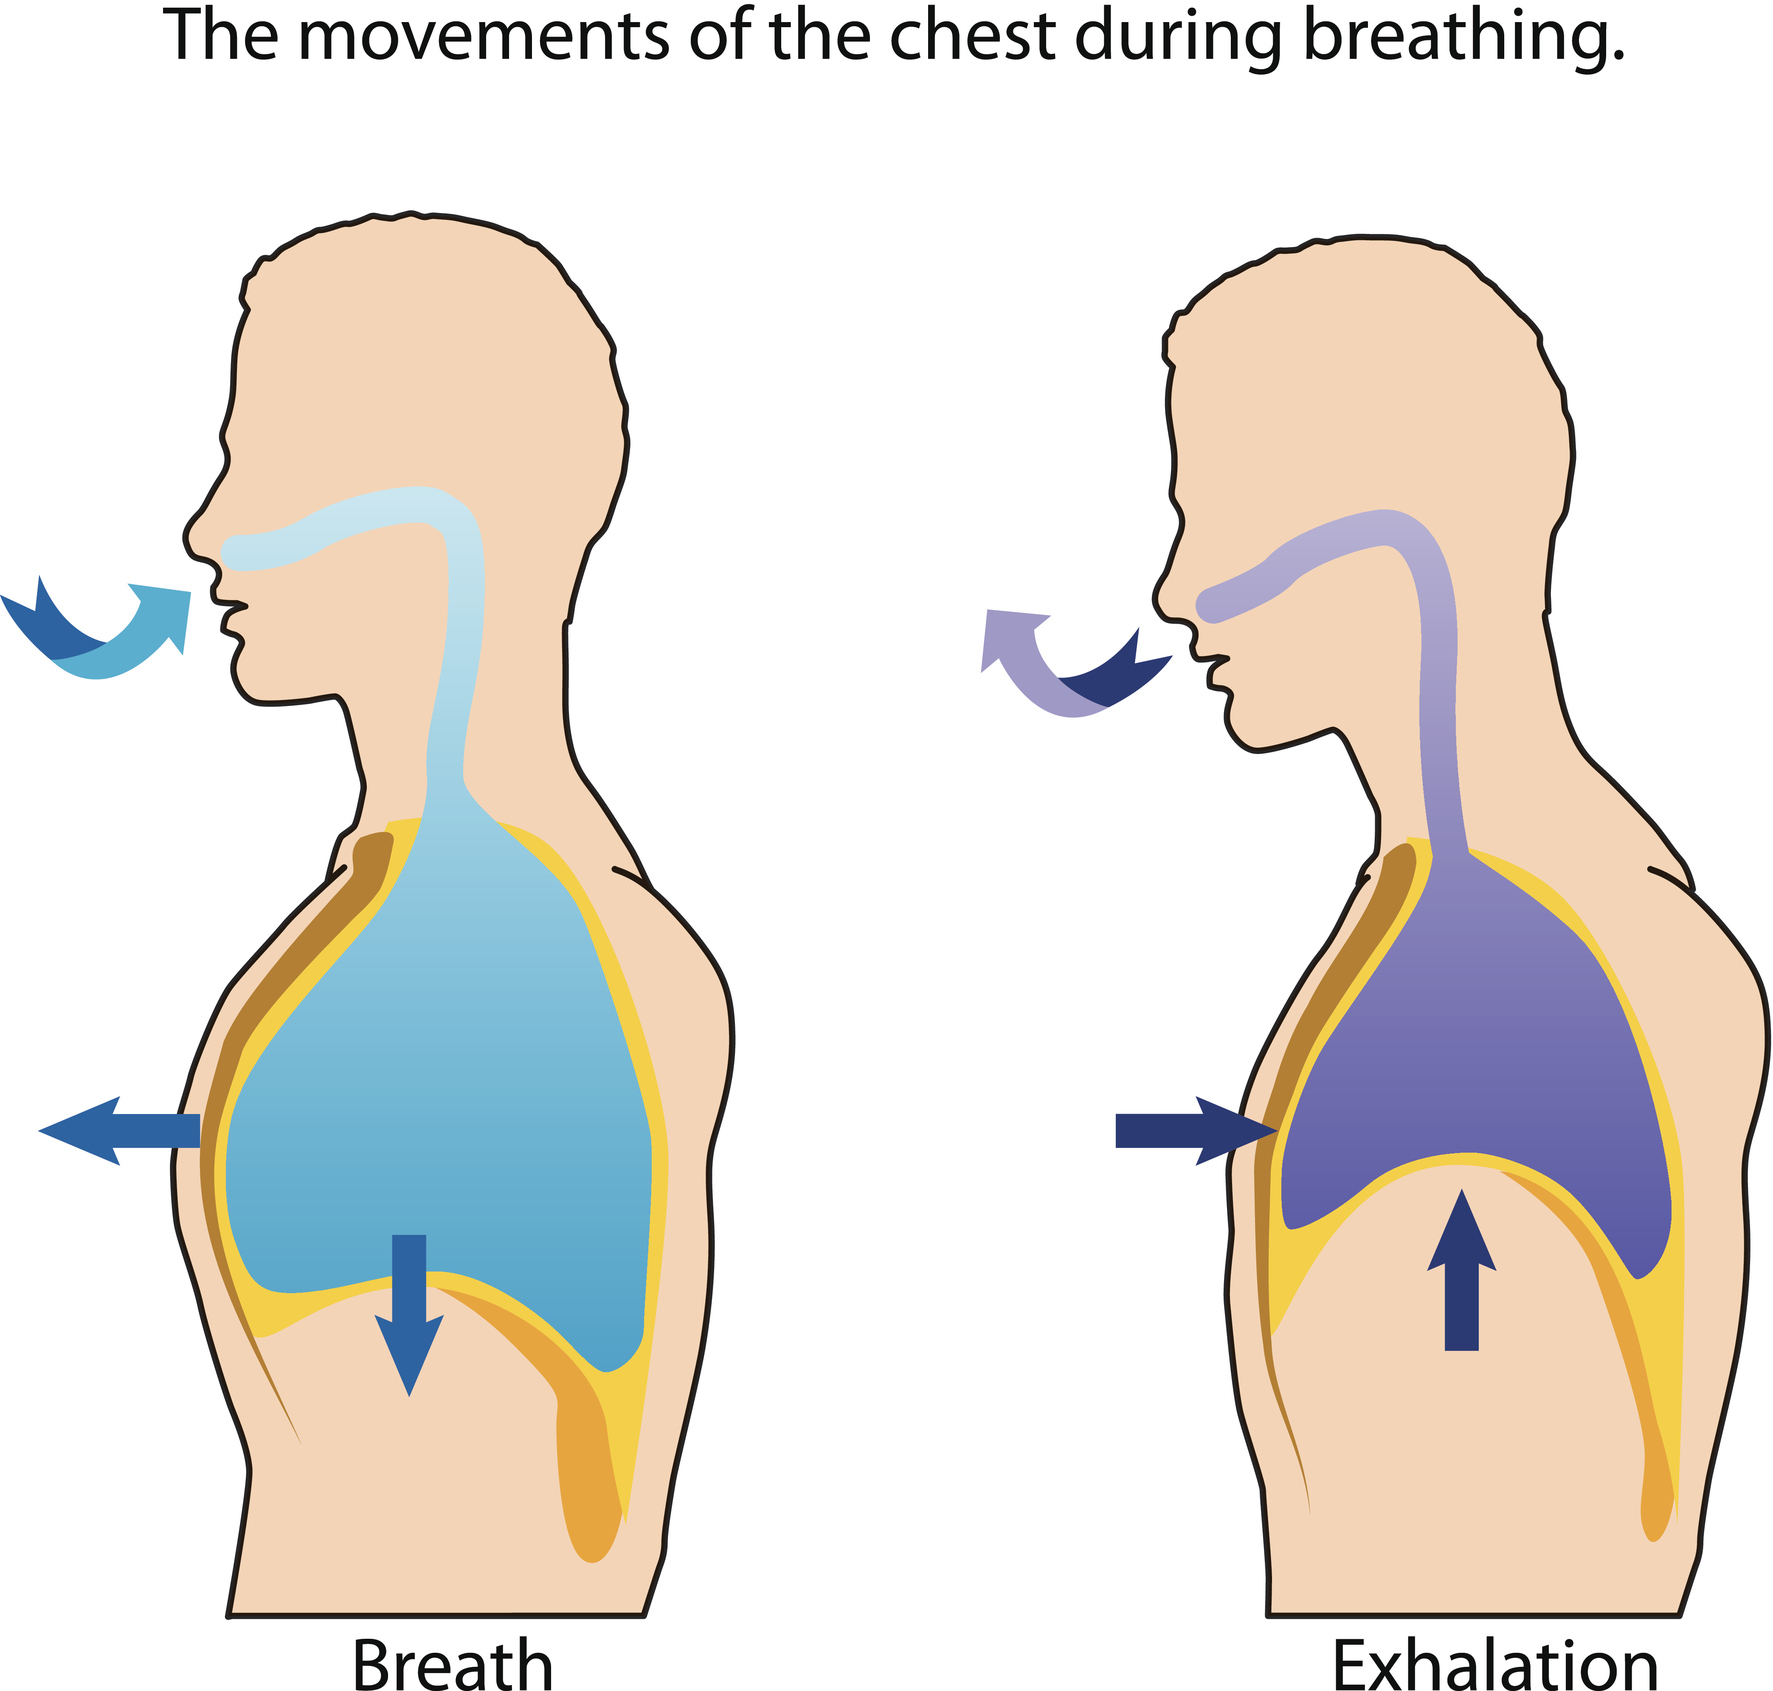 Image: the movements of the chest during the breathing cycle